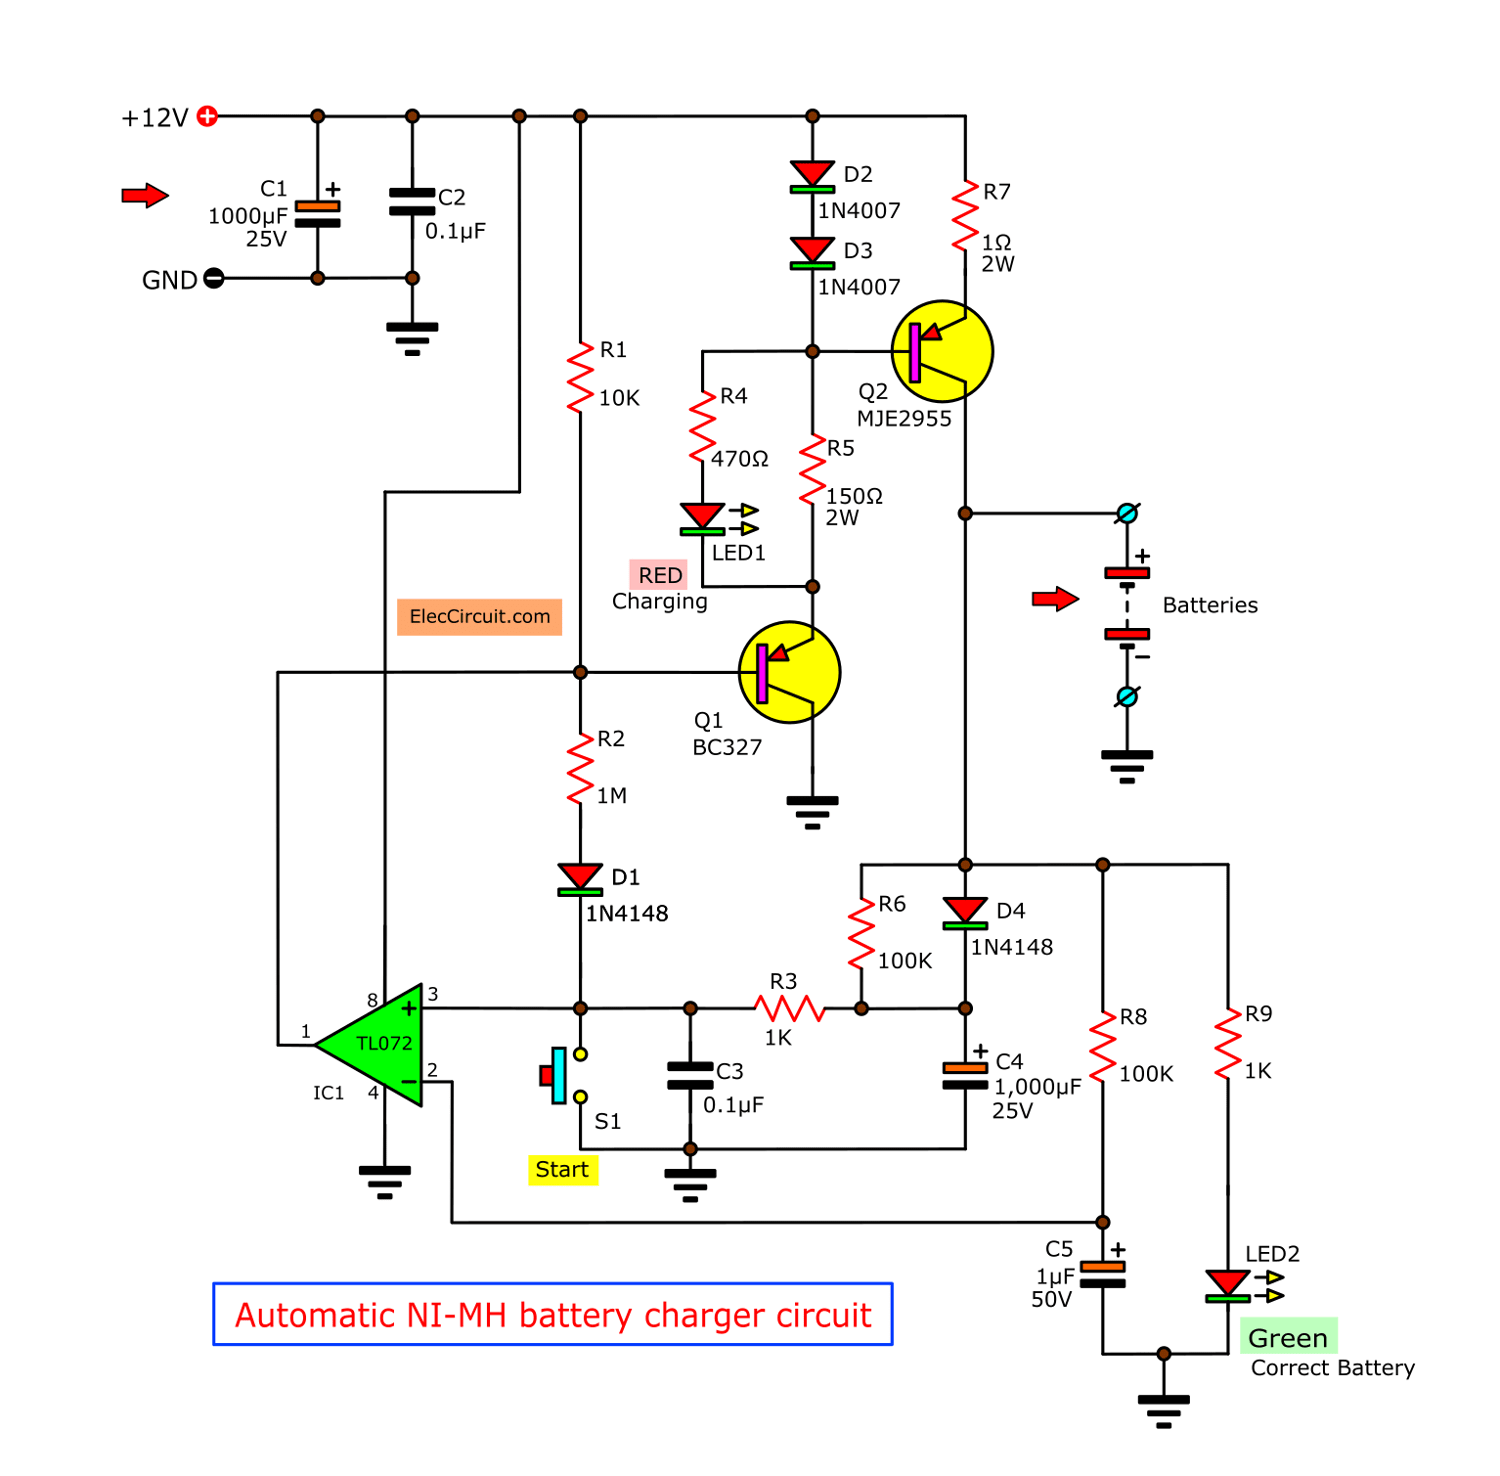 hight resolution of siwire pp3 nimh battery charger circuit diagram